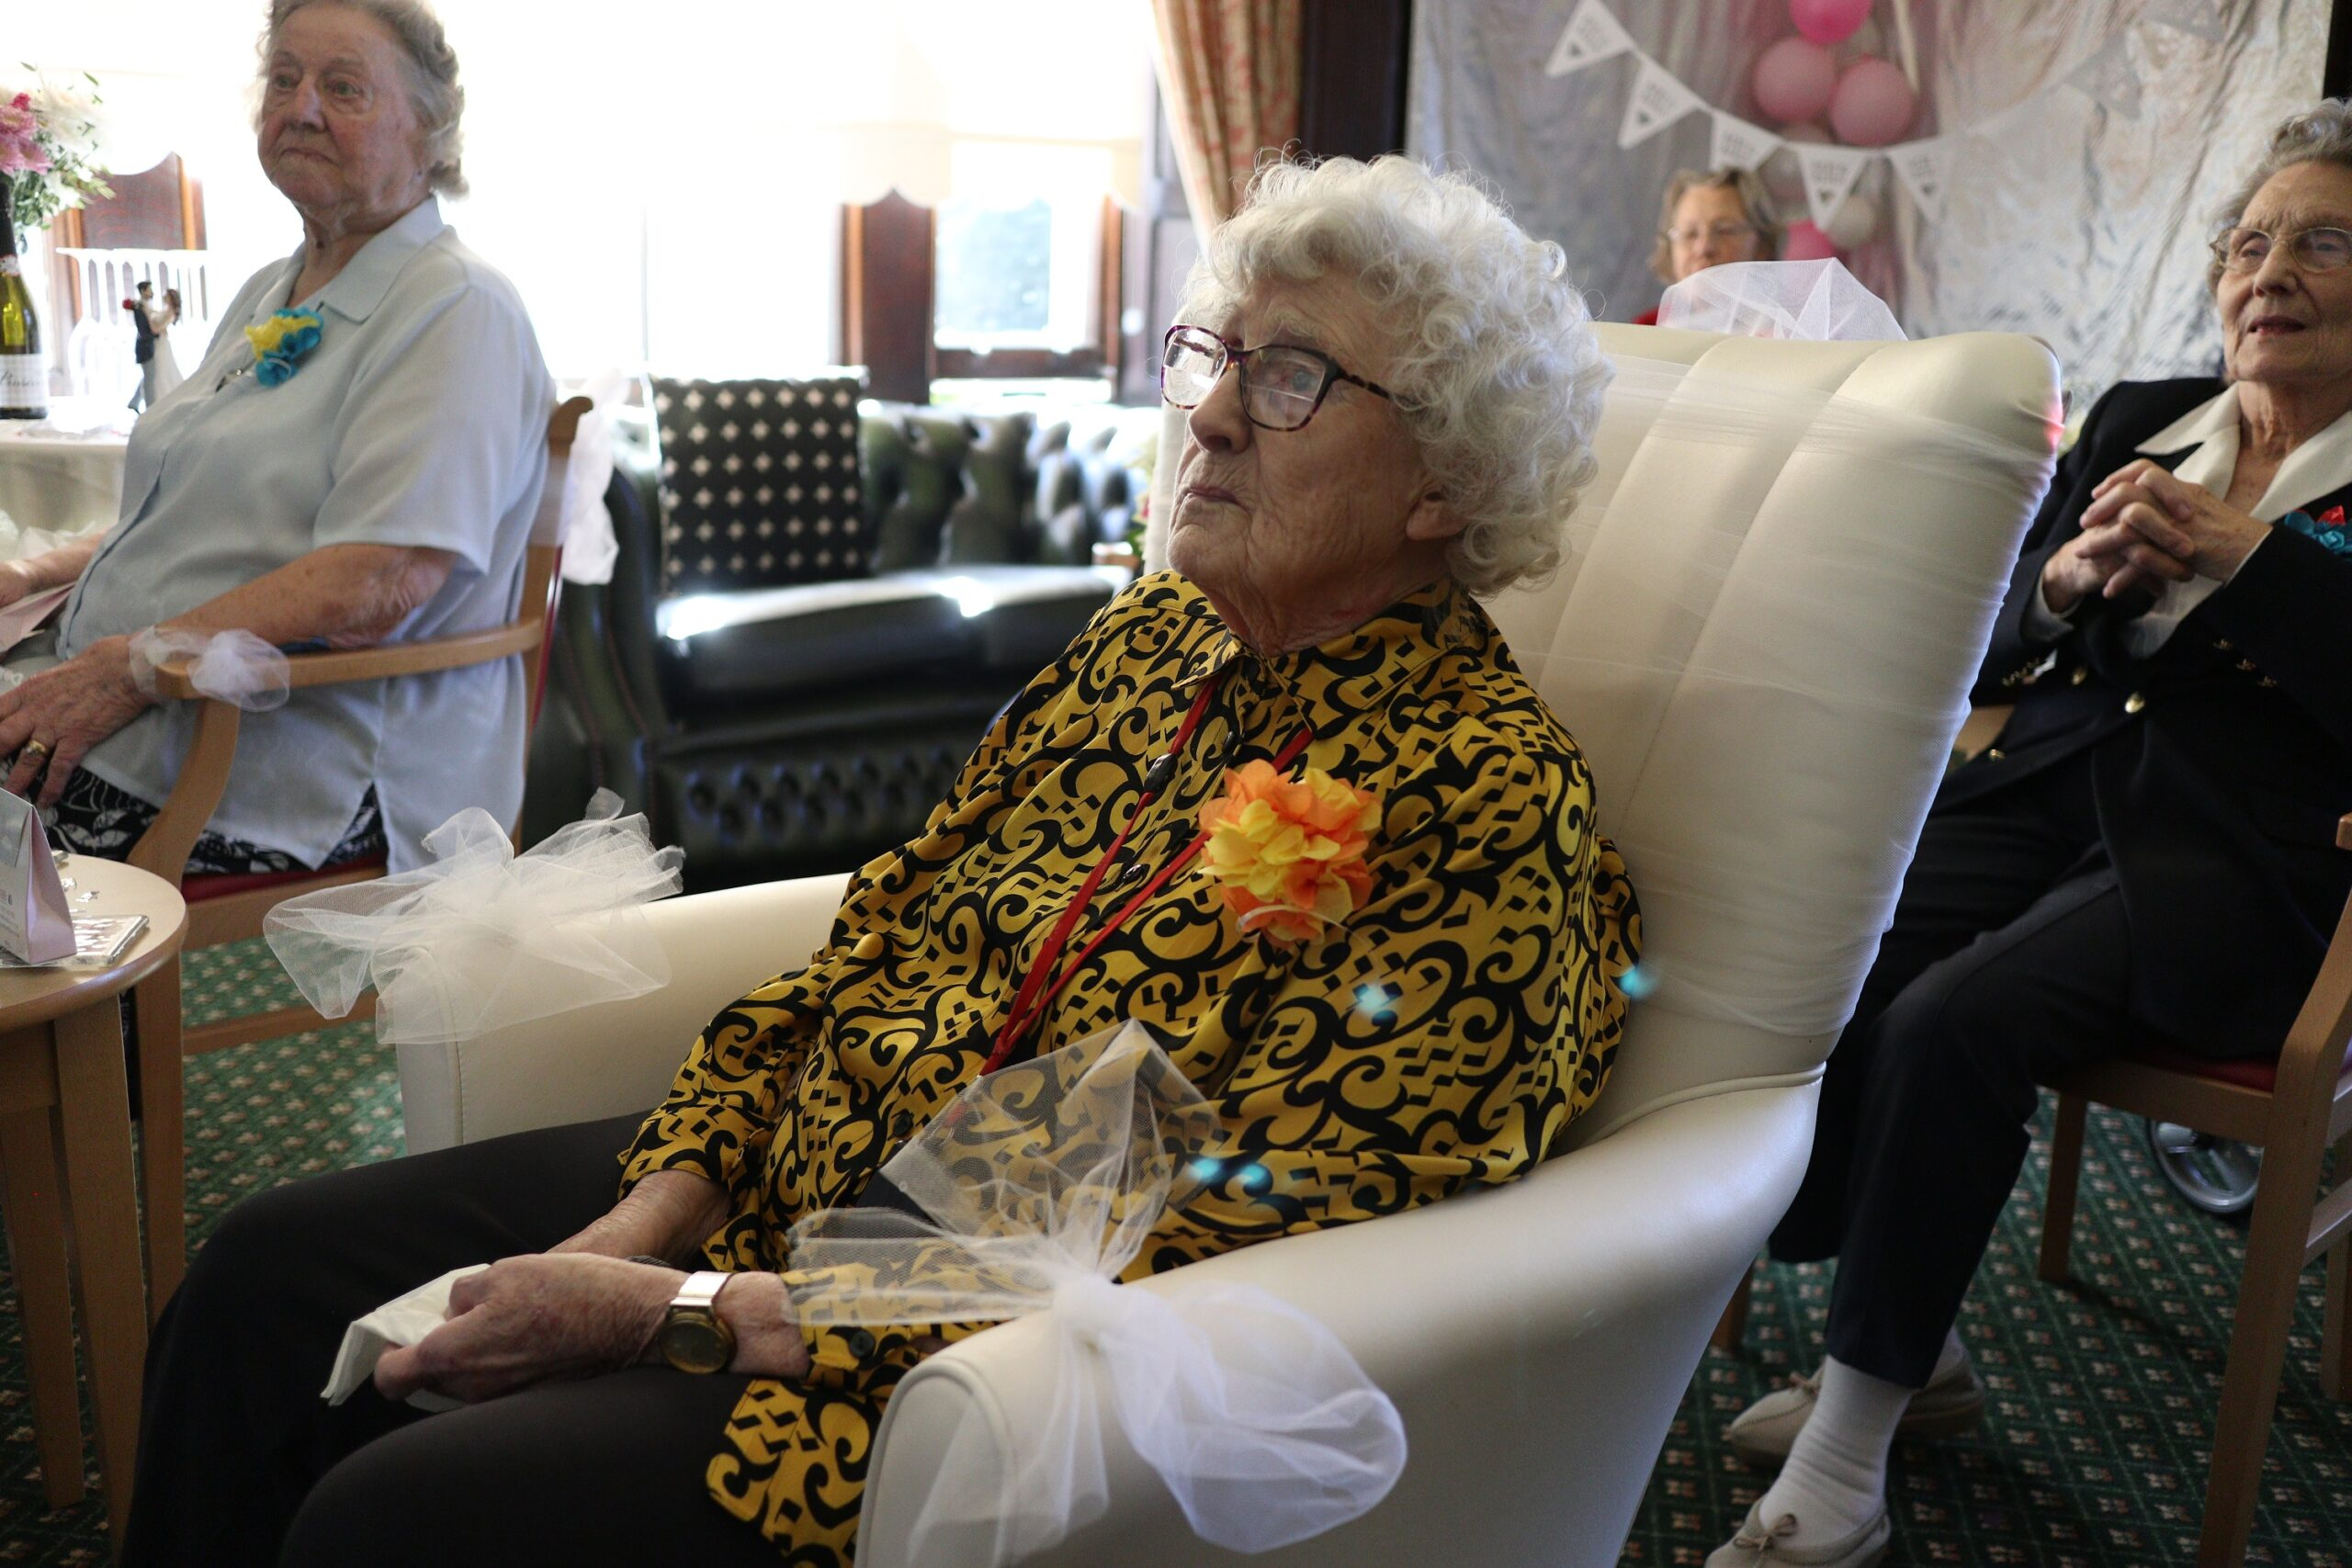 Grandma, 91, watches live stream of granddaughter's wedding from care home, The Manc